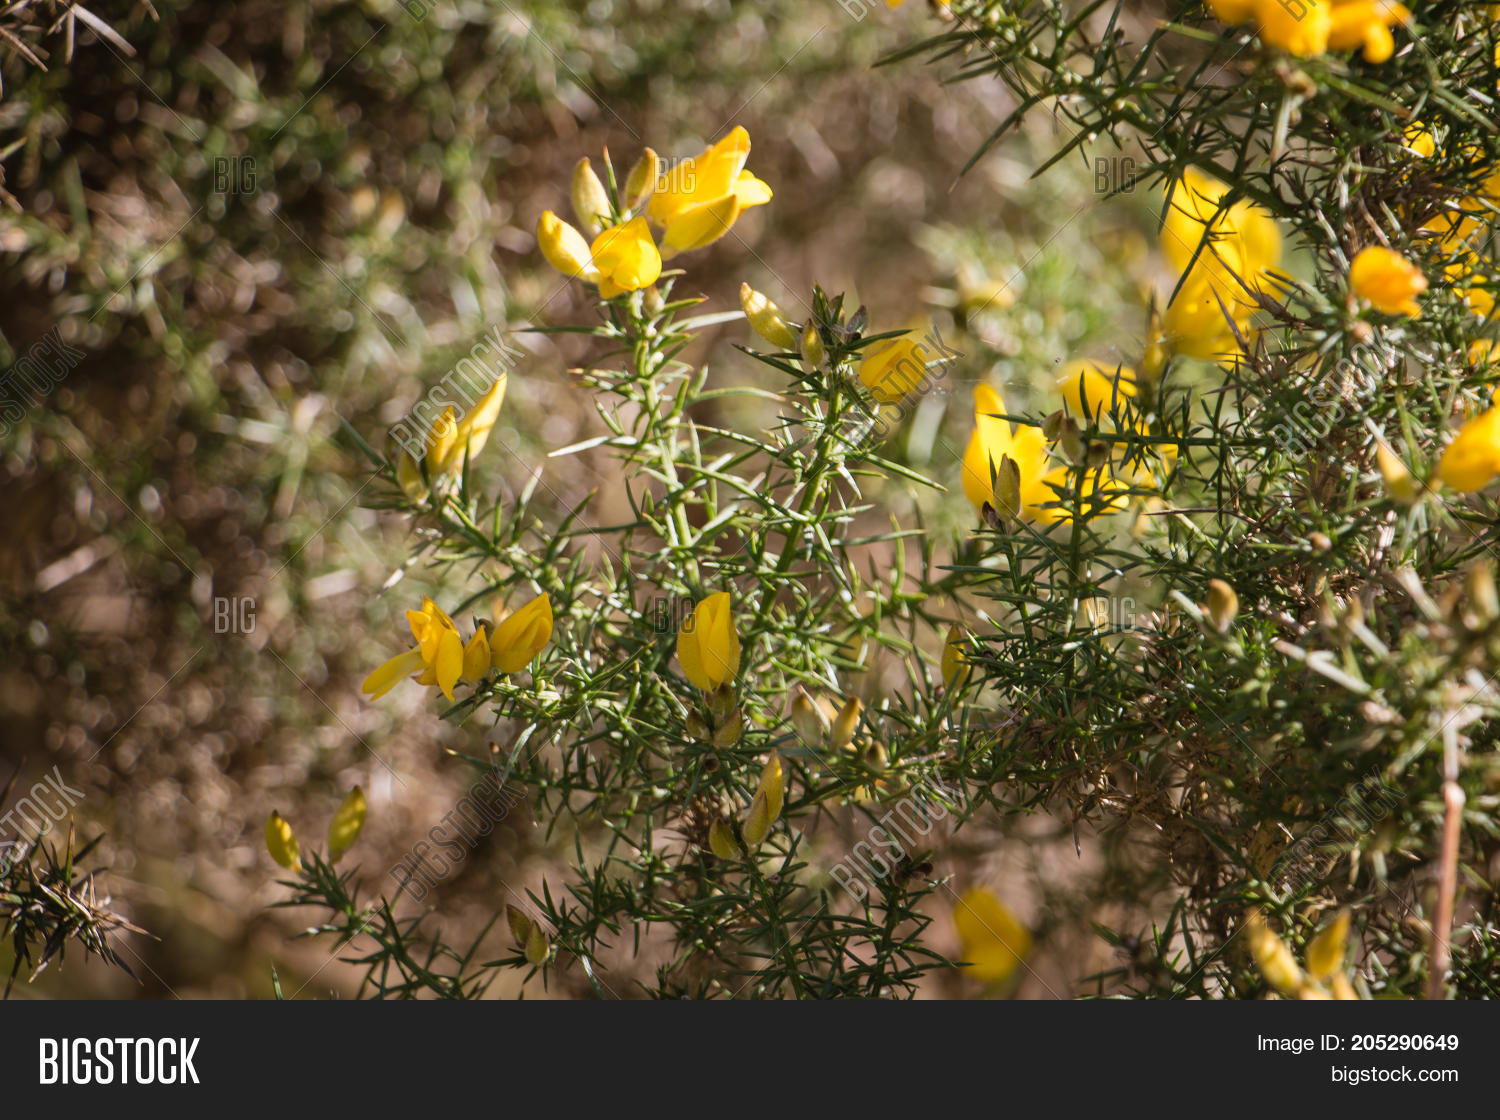 Flowering common gorse ulex image photo bigstock flowering common gorse ulex europaeus a spiky thorn covered plant with bright yellow mightylinksfo Gallery